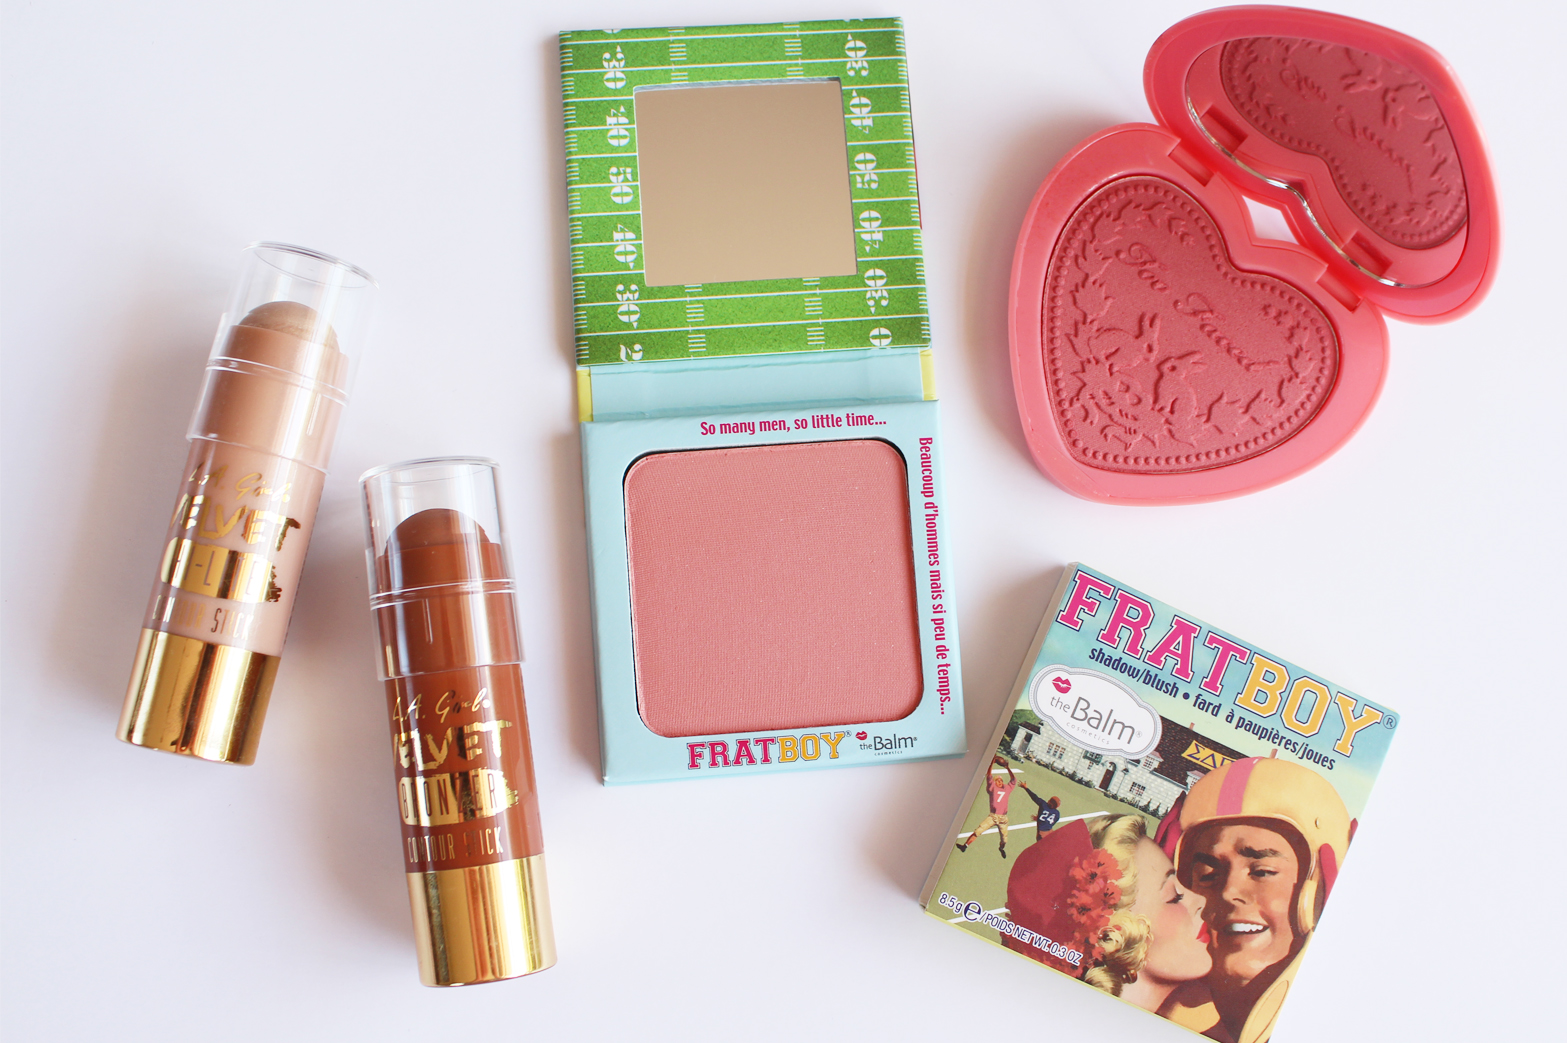 COLLECTIVE BEAUTY HAUL - Beauty Bliss, TheBalm, Chi Chi, Essence, Blistex, L.A. Girl, Too Faced, Karen Murrell - CassandraMyee